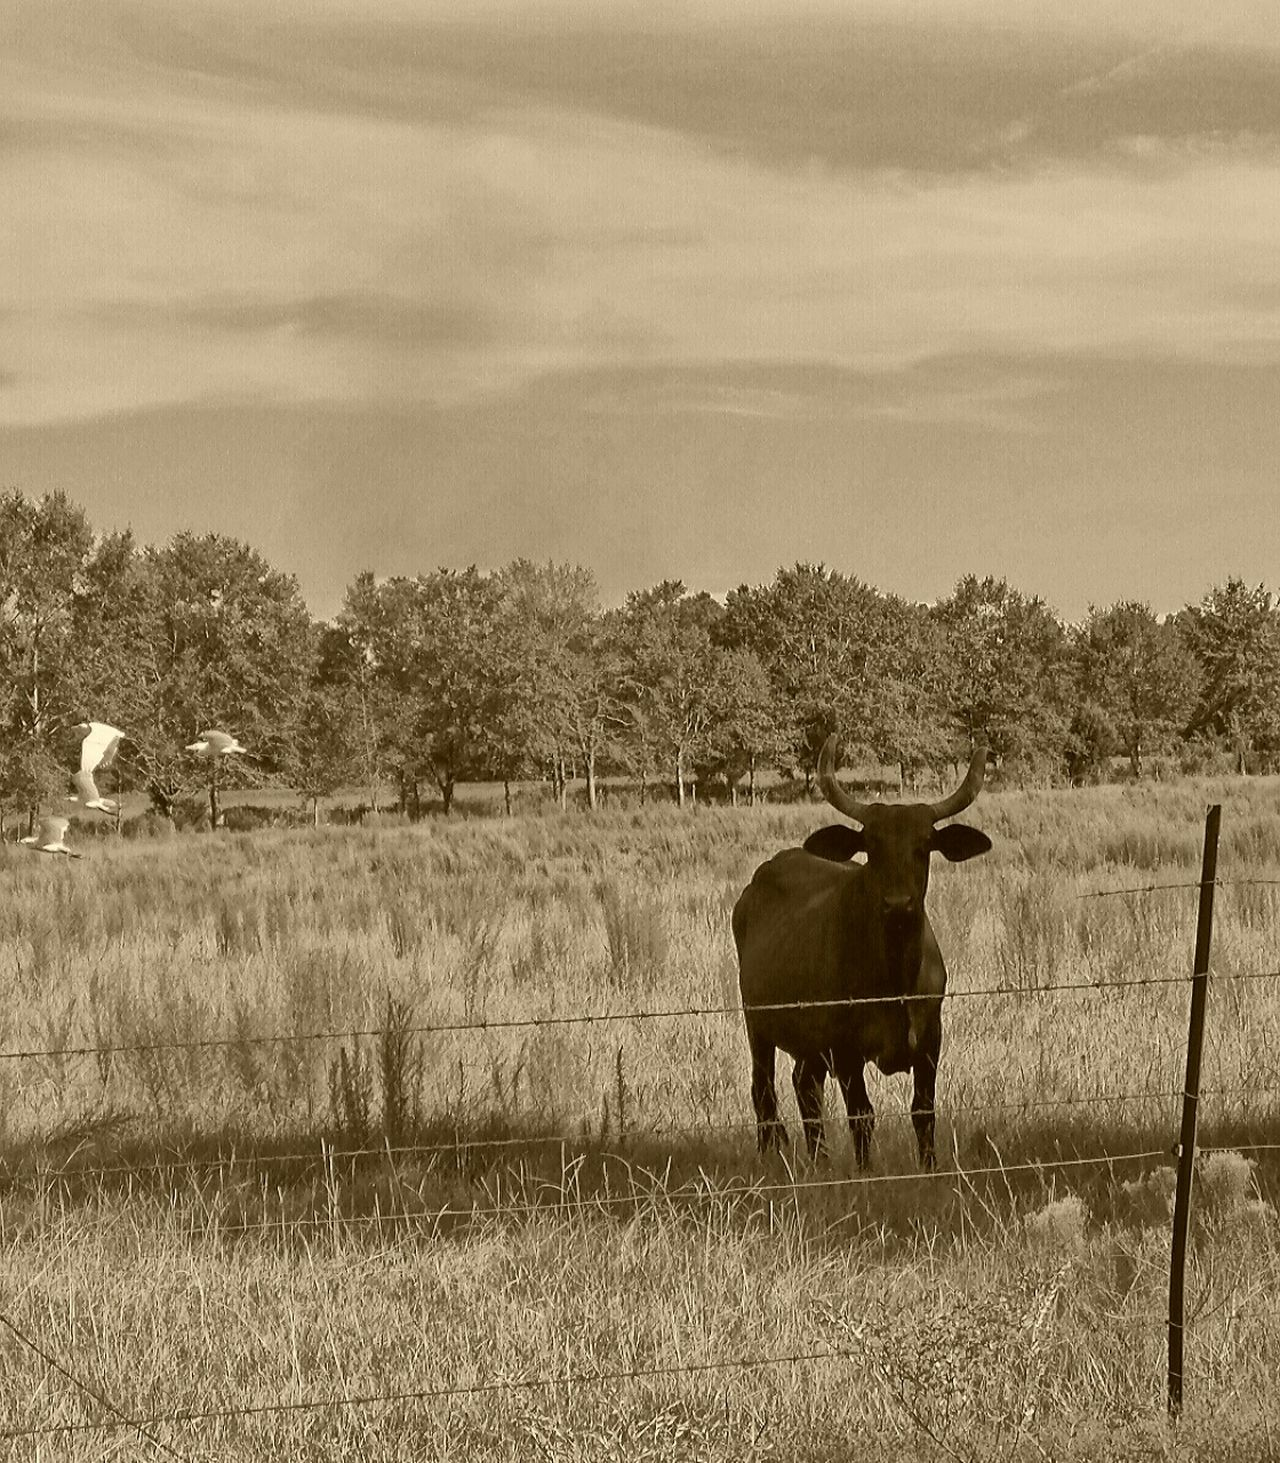 Cow, Flying White Birds, Rural, Field, Nature, Country, Animal